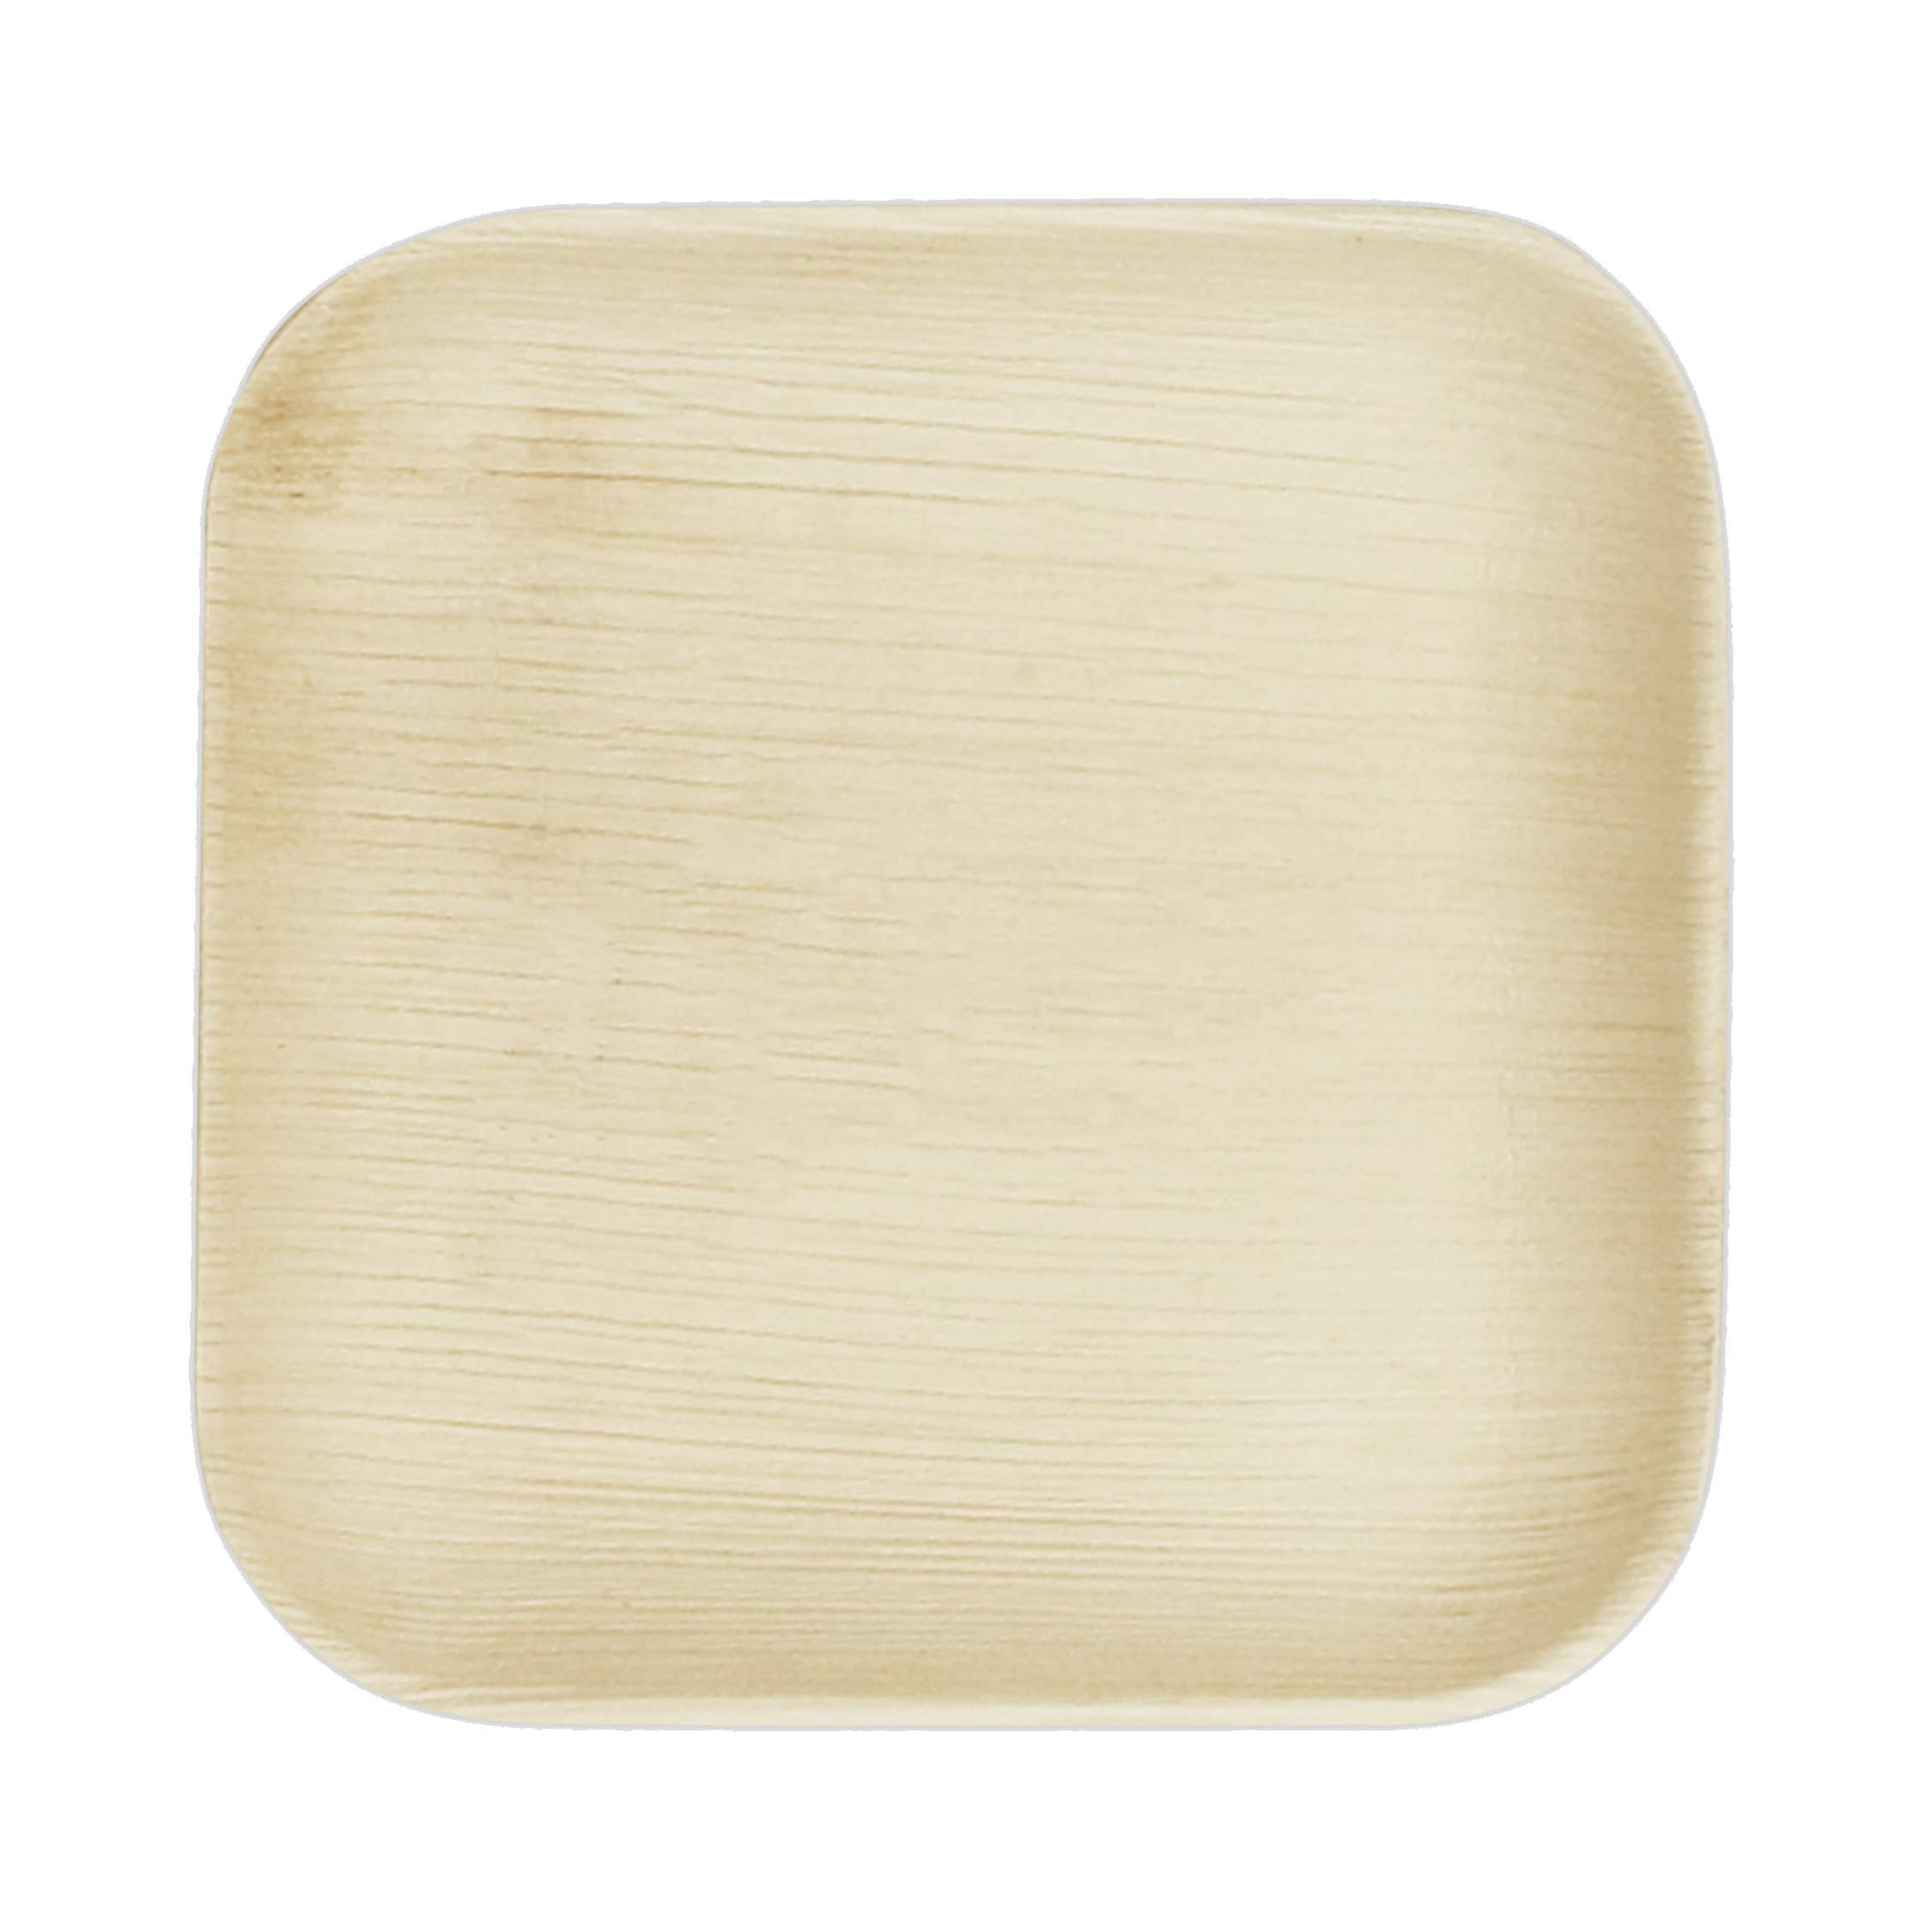 VerTerra 6'' x 6'' Square Palm Leaf Plates - Compostable Dinnerware - Appetizer and Dessert Plates (25 Pack)